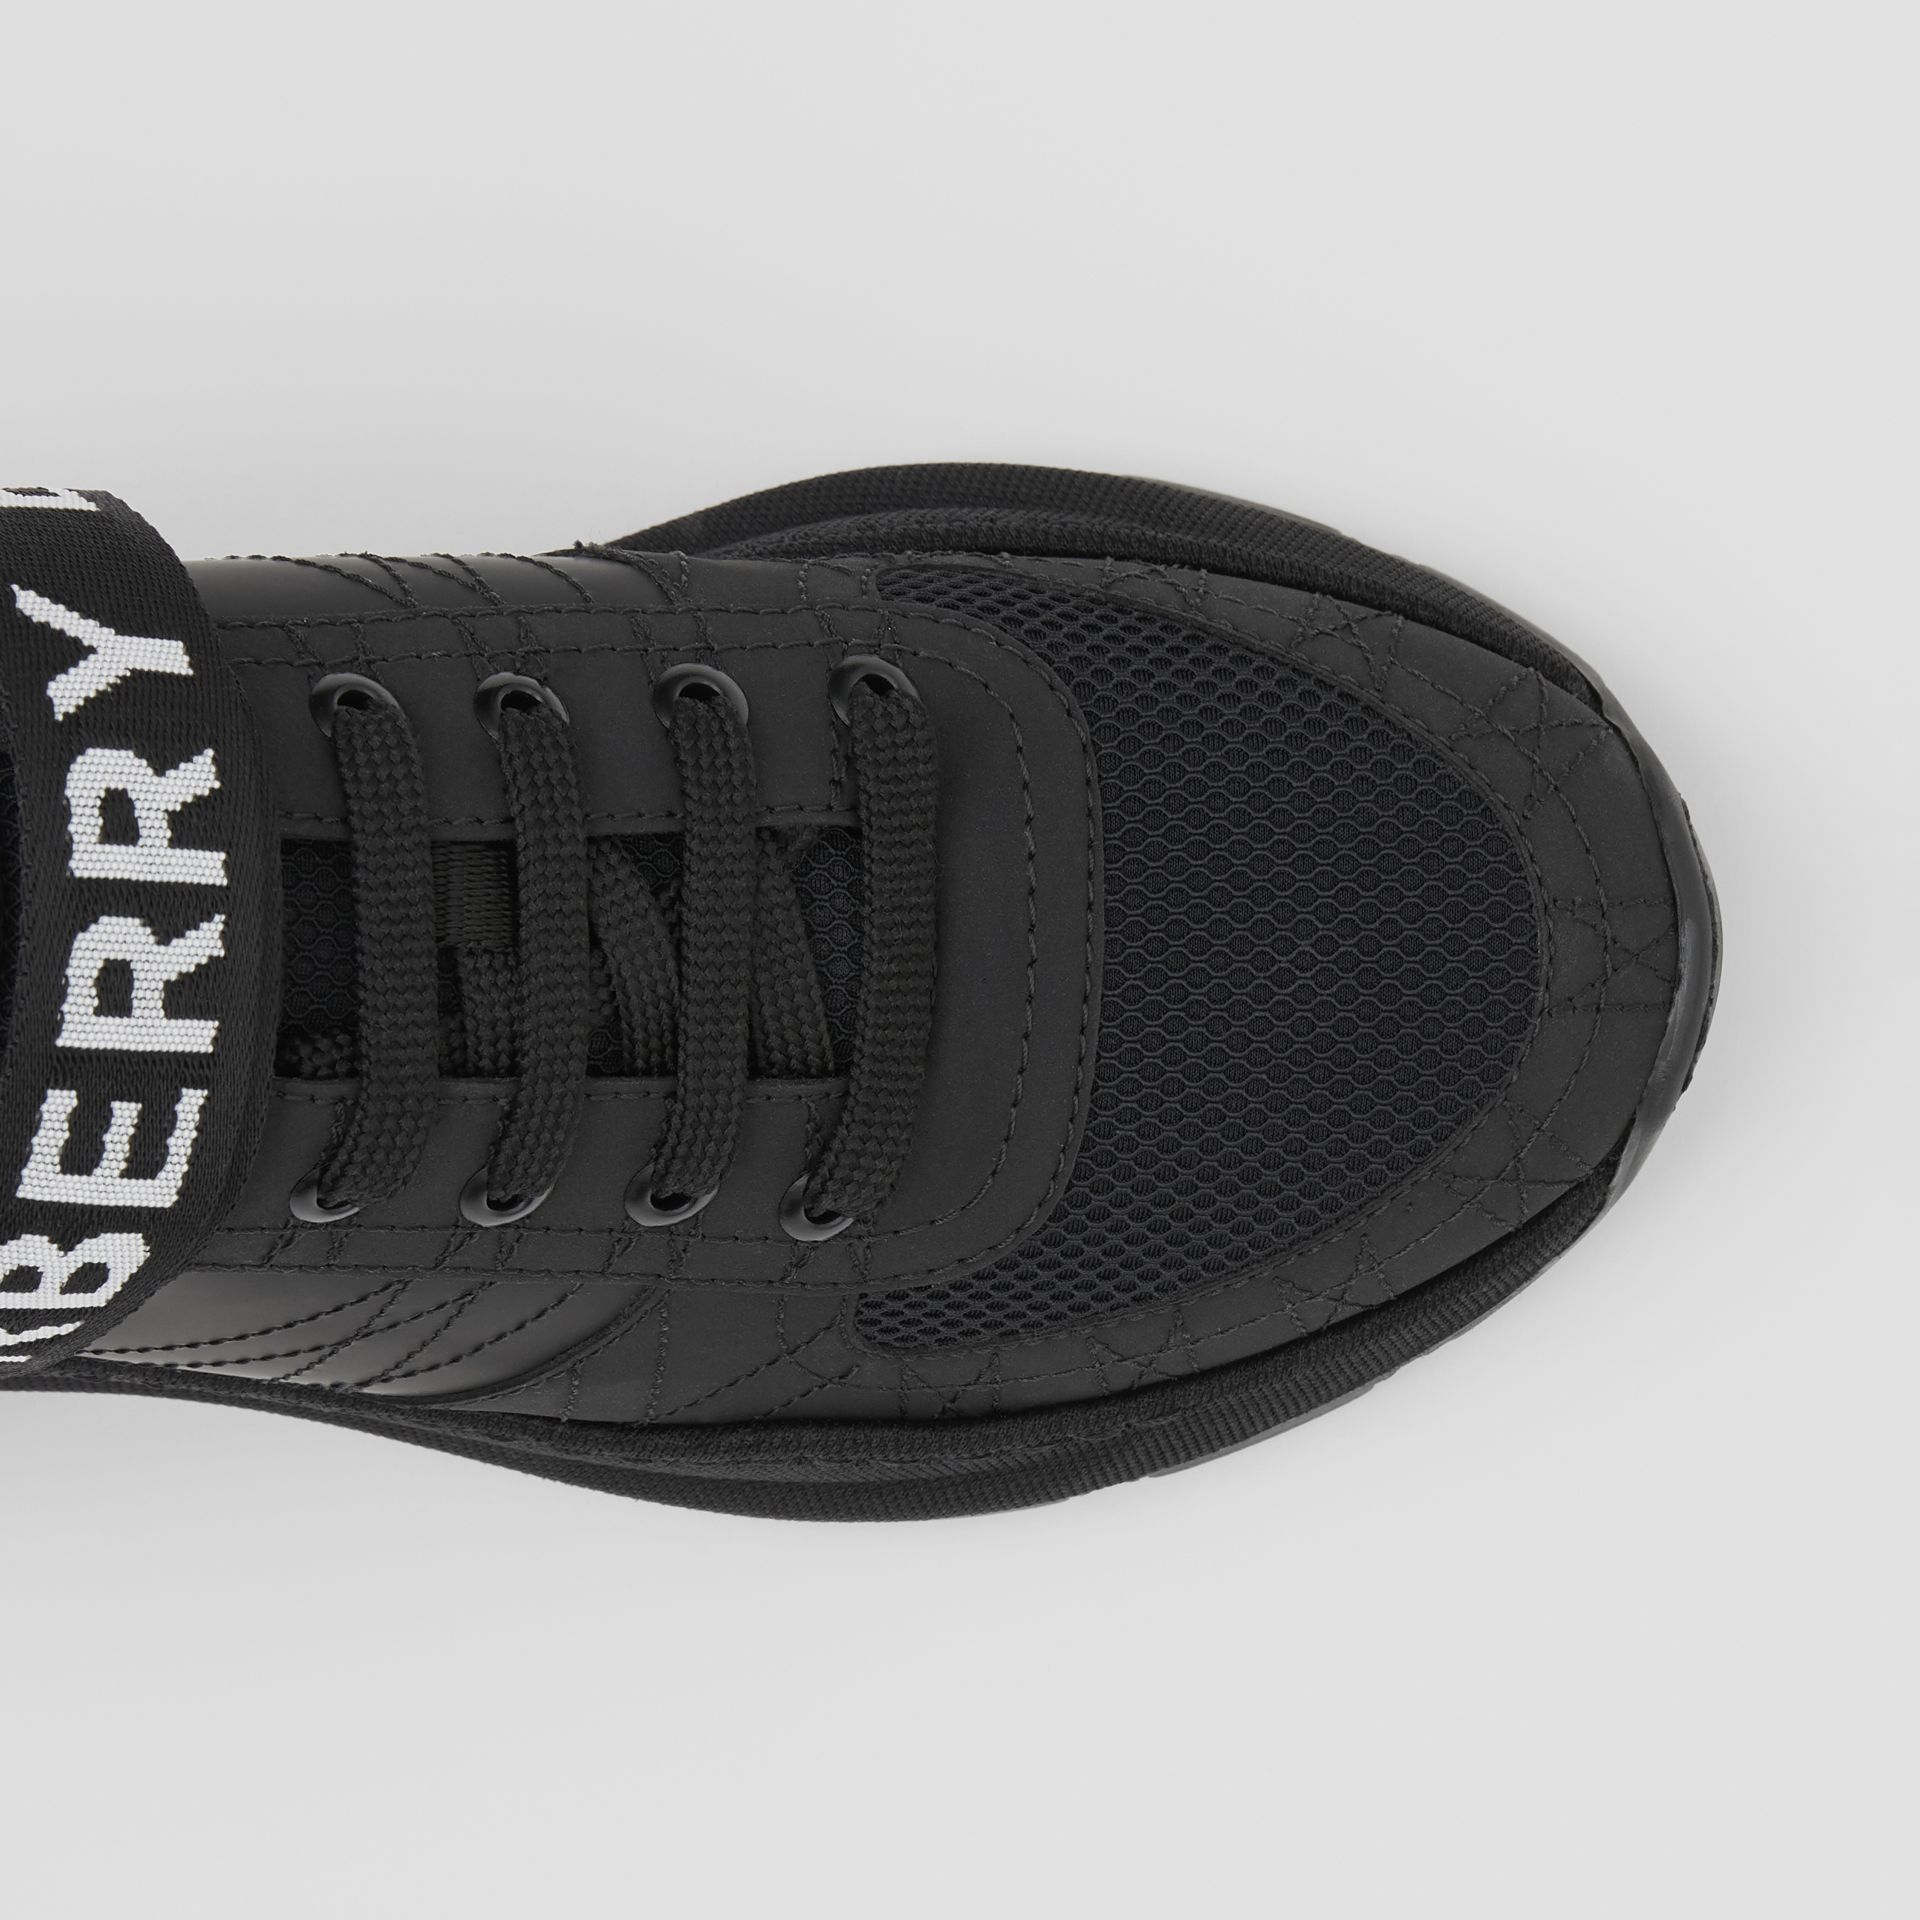 Logo Detail Leather, Nubuck and Mesh Sneakers in Black - Women | Burberry Australia - gallery image 6